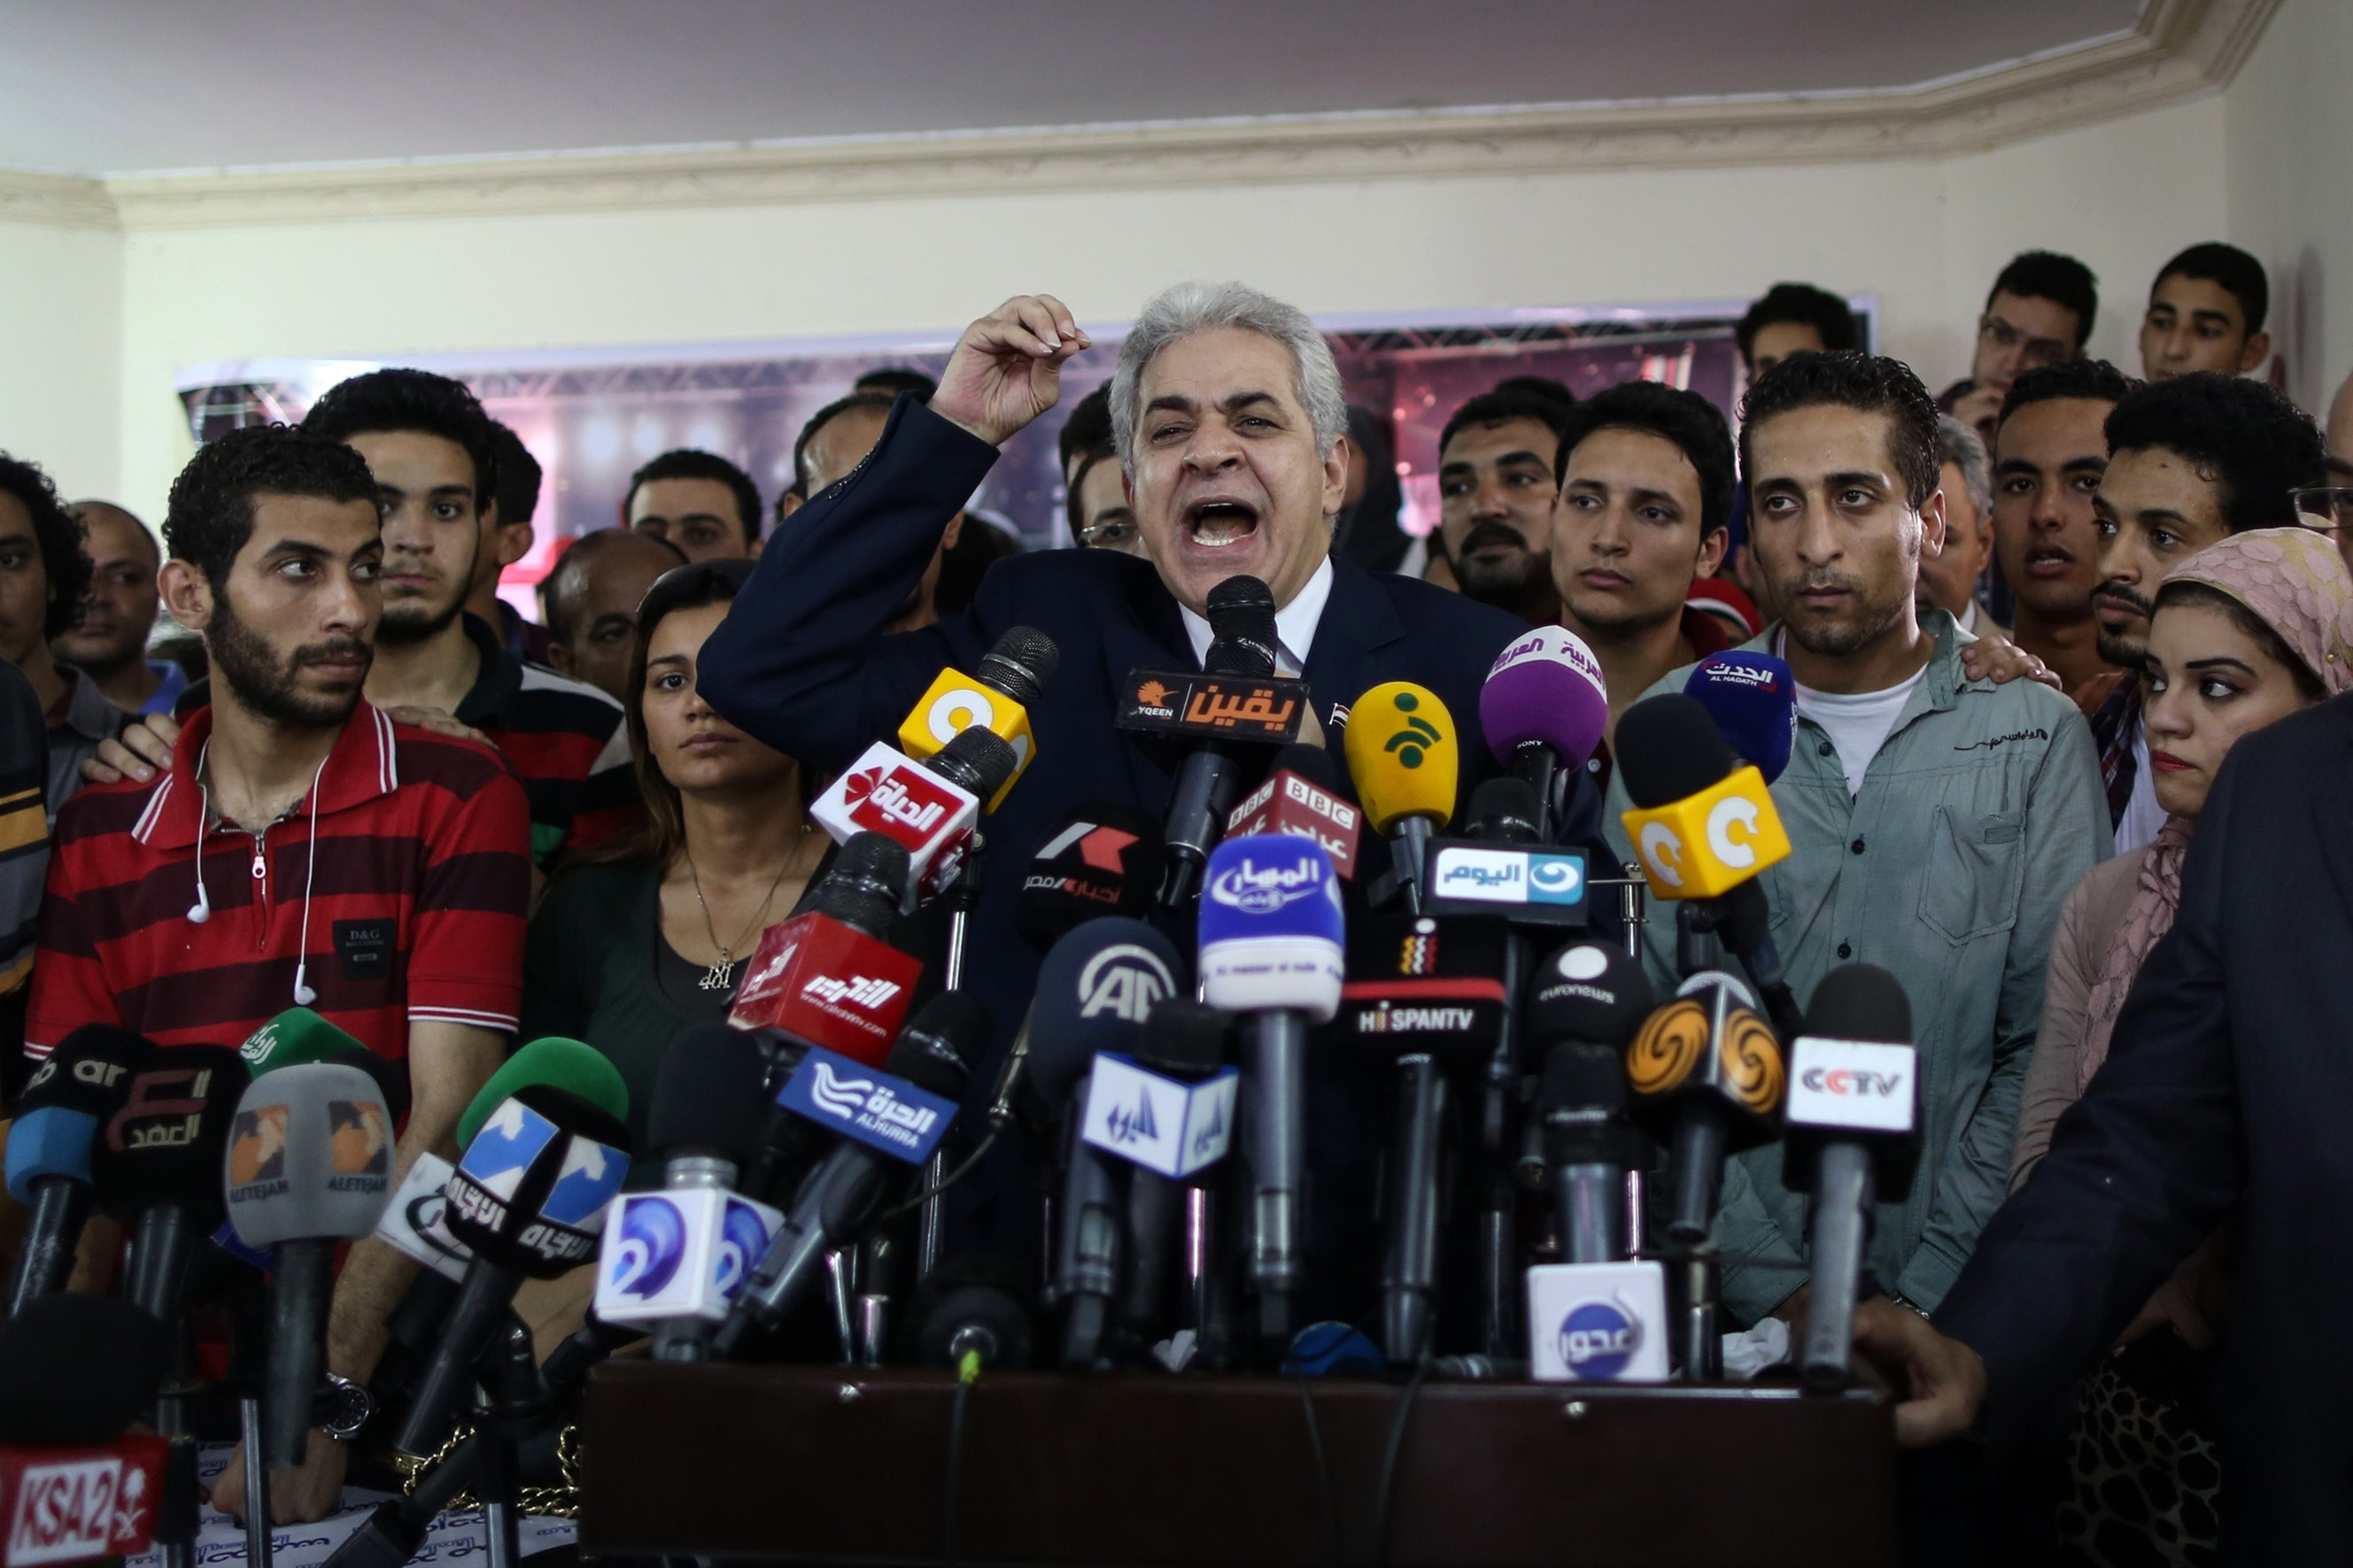 """Egyptian former leftist presidential candidate Hamdeen Sabbahi speaks during a press conference after preliminary results from Egypt's presidential election gave ex-army chief Abdel Fattah al-Sisi 96 percent of the vote on May 29, 2014 in the capital Cairo. Speaking at a news conference, Sabbahi said """"I accept my defeat and respect the people's choice"""" in the three-day election that ended on May 29.     (AFP PHOTO / MOHAMED EL-SHAHED)"""